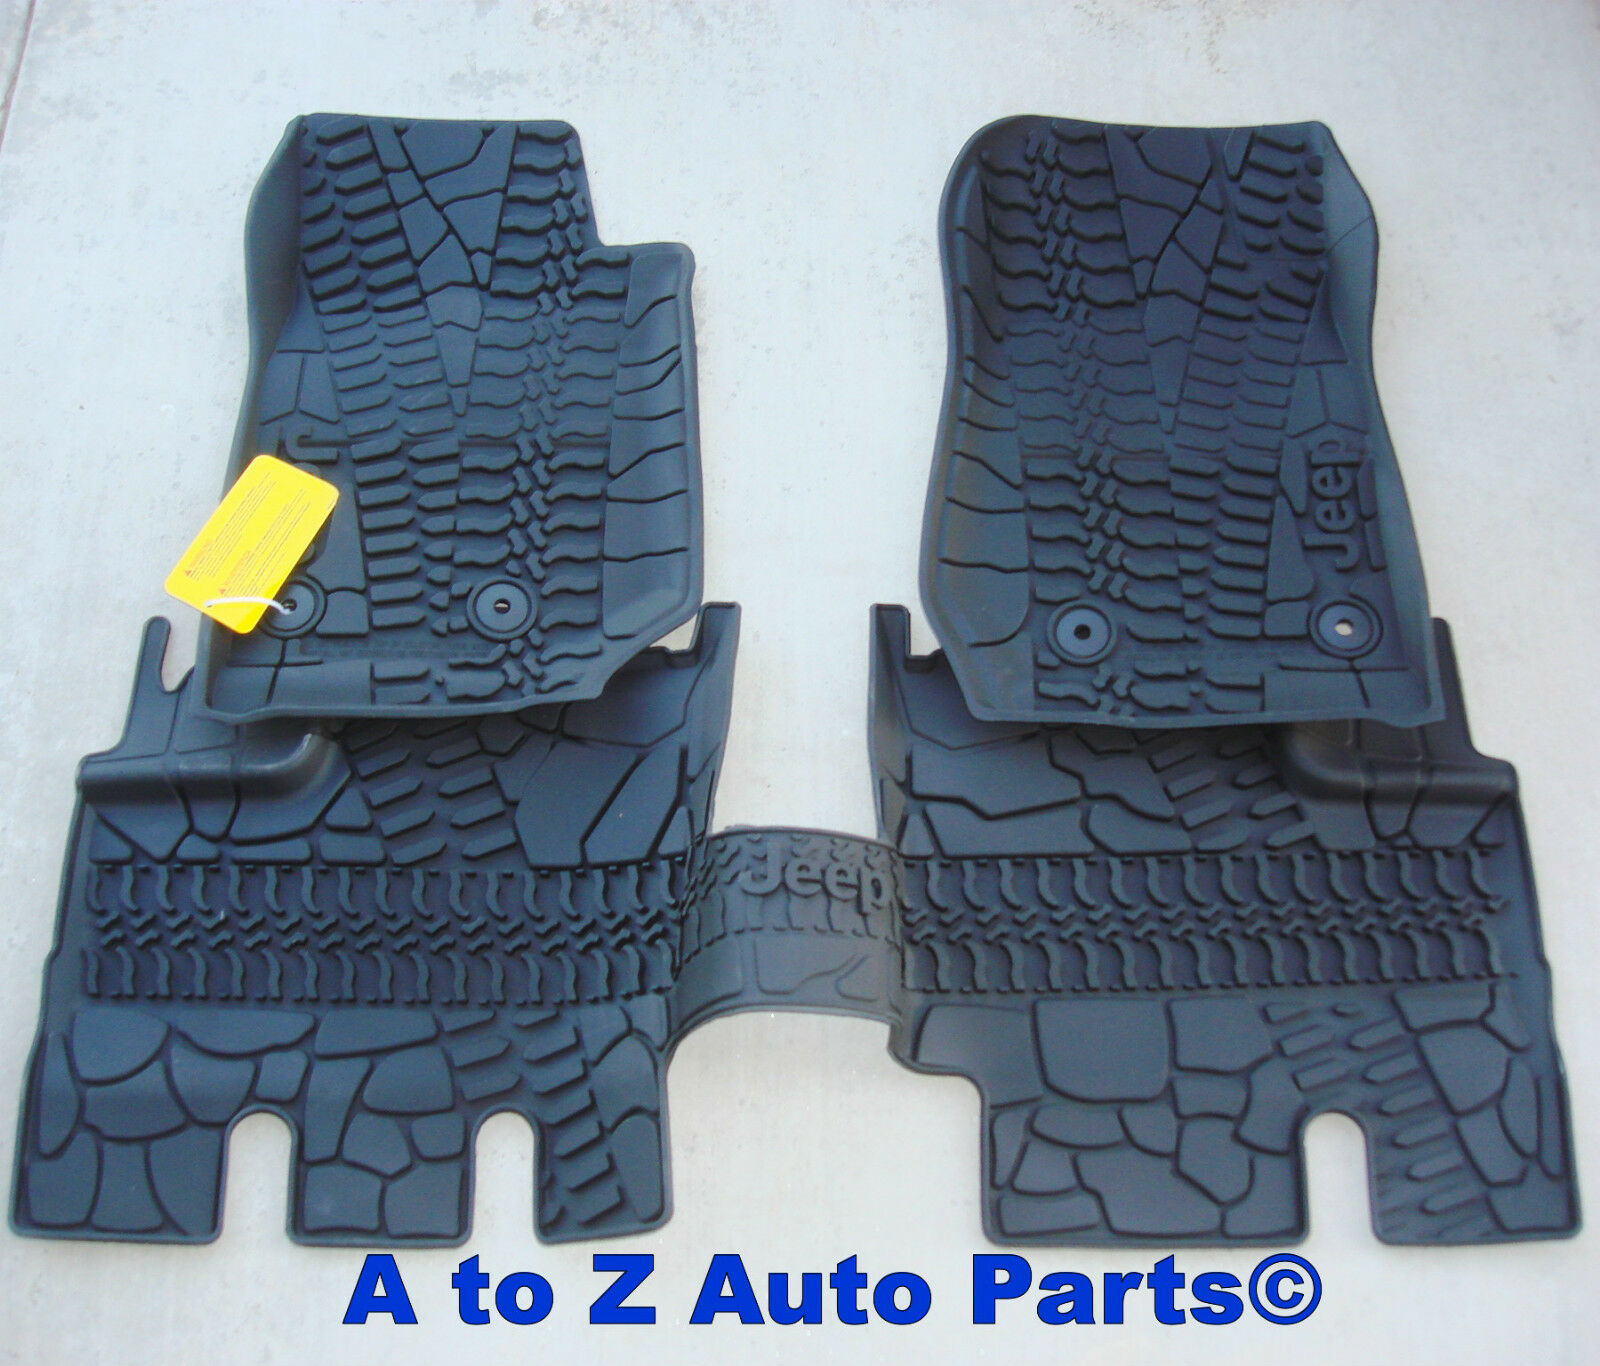 NEW 2014 2018 Jeep Wrangler JK Unlimited 4 DOOR Slush Style RUBBER Floor  Mats 1 Of 3Only 2 Available See More